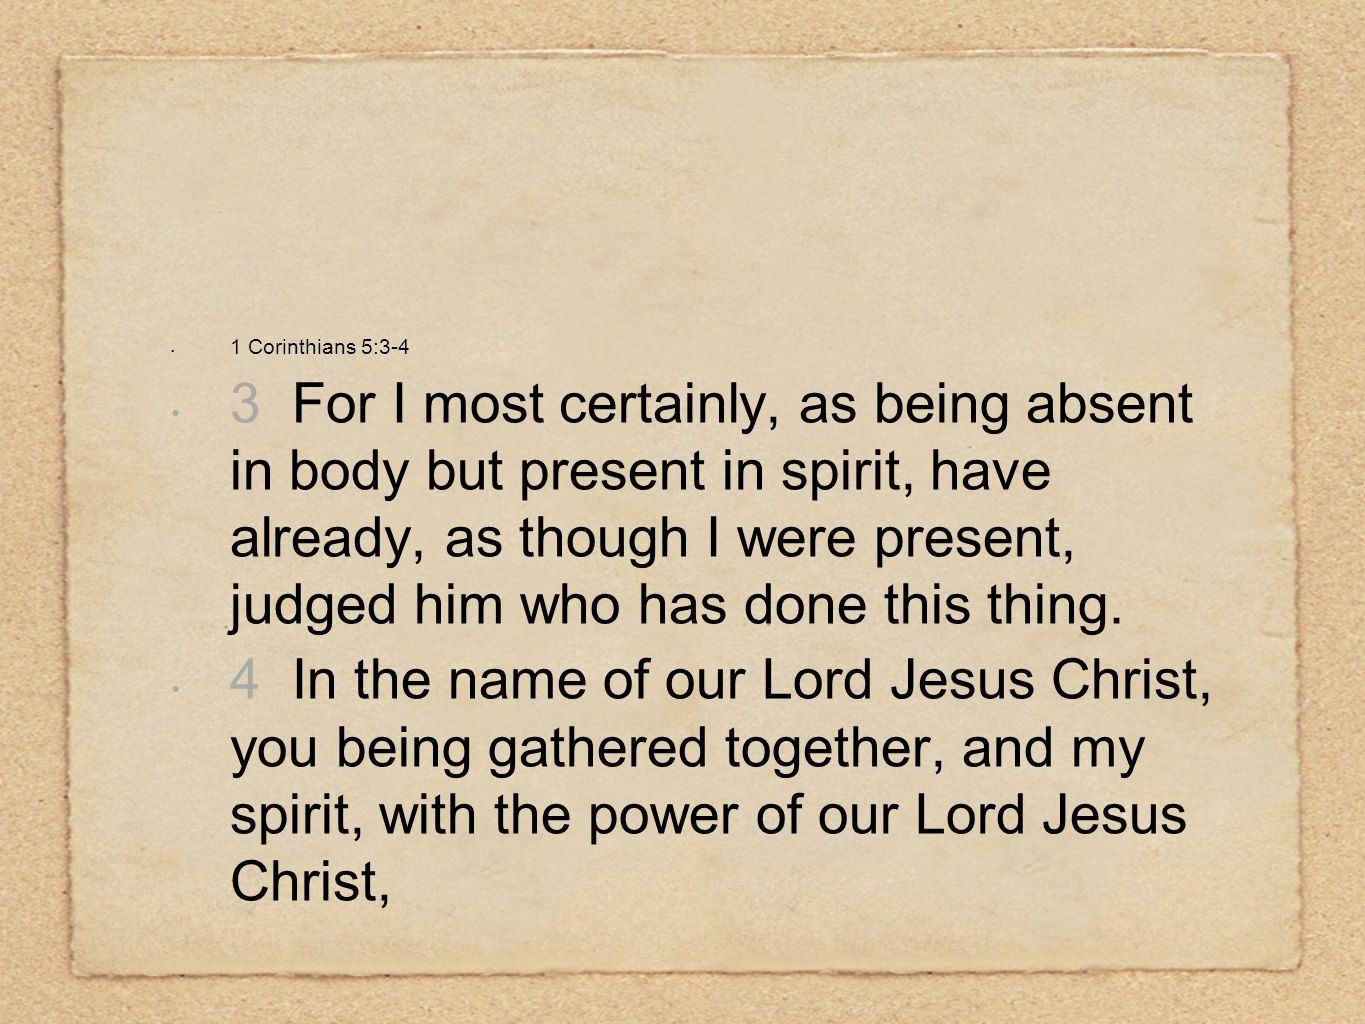 1 Corinthians 5:3-4 3 For I most certainly, as being absent in body but present in spirit, have already, as though I were present, judged him who has